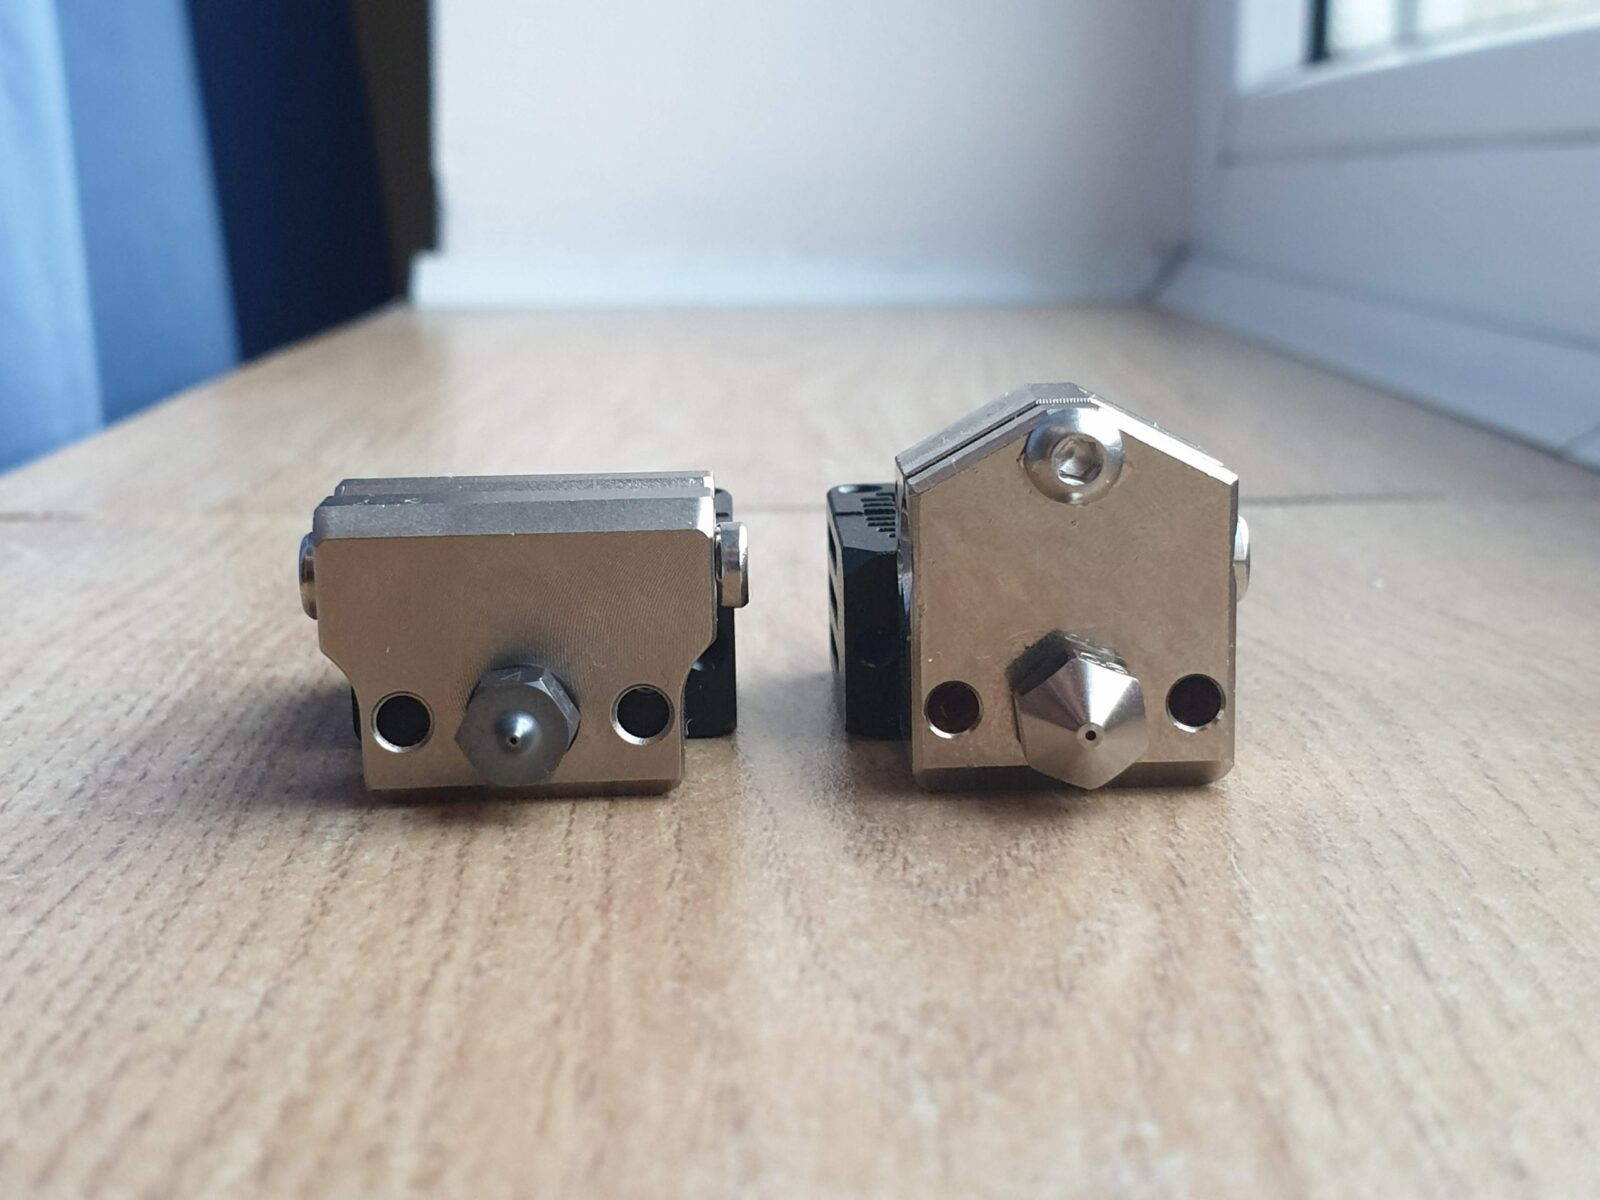 NF Crazy Hotend Review